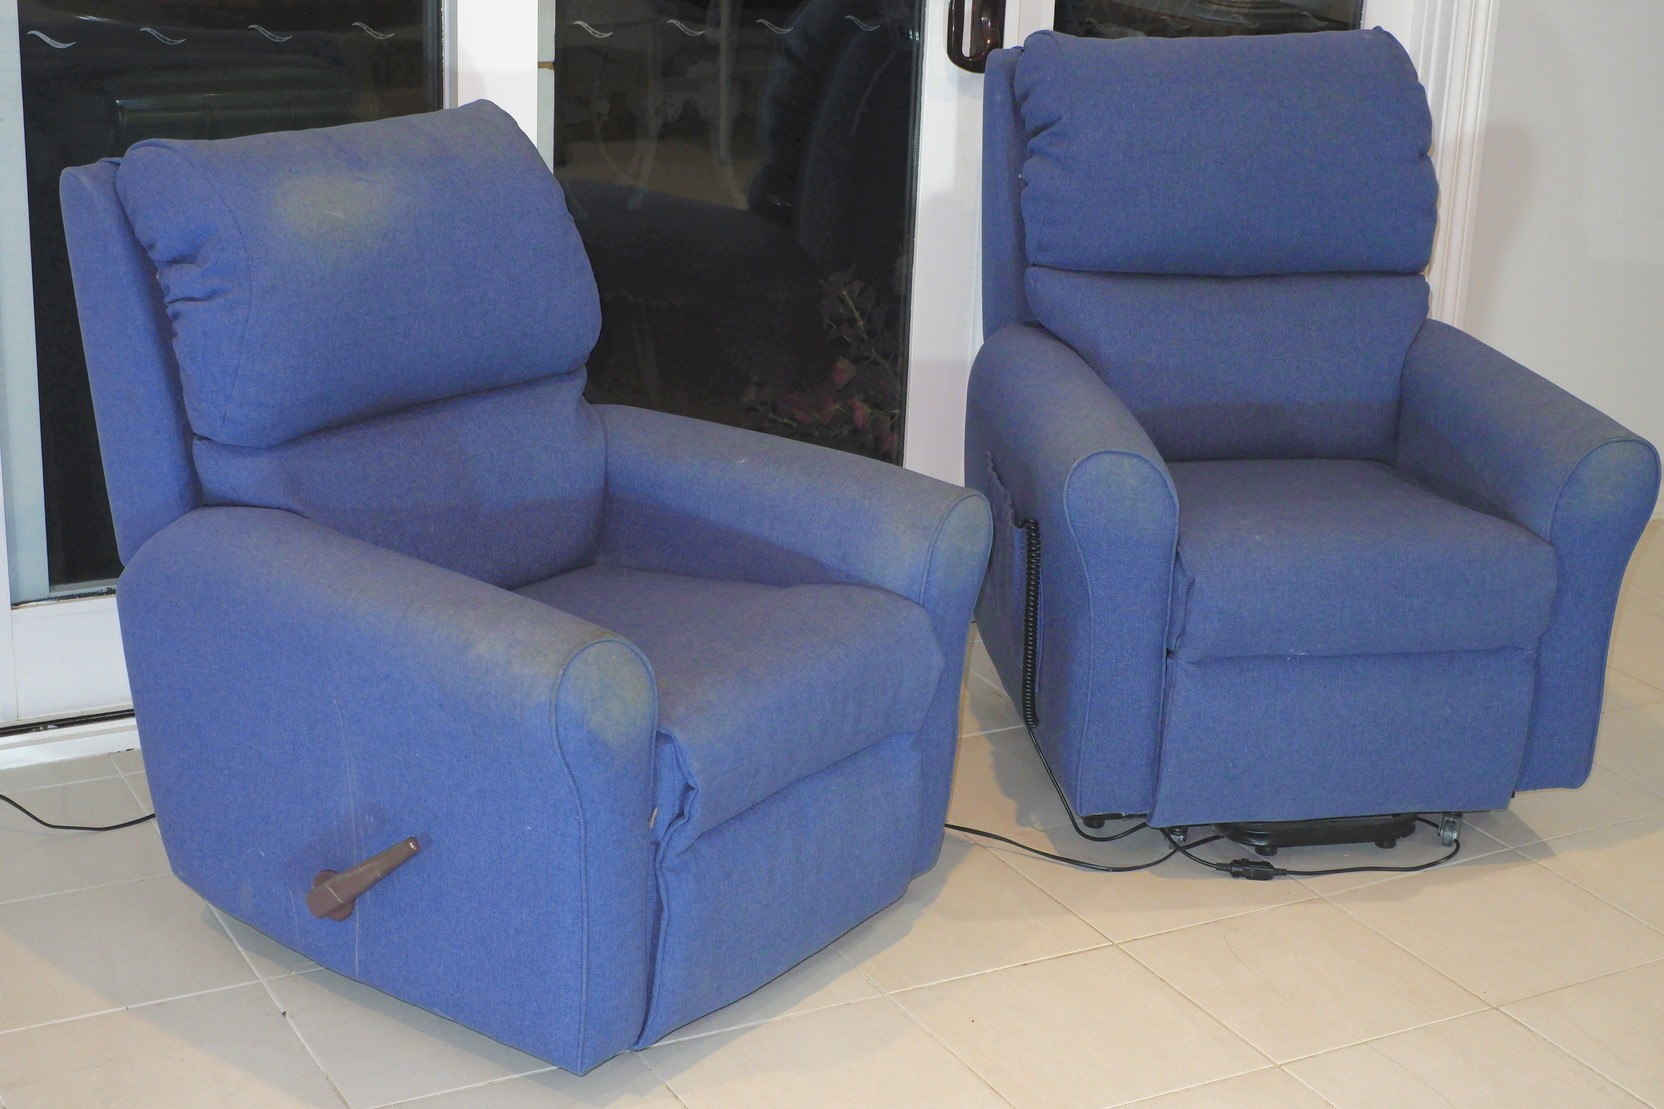 'One Electric and One Manual Blue Fabric Upholstered Armchairs'